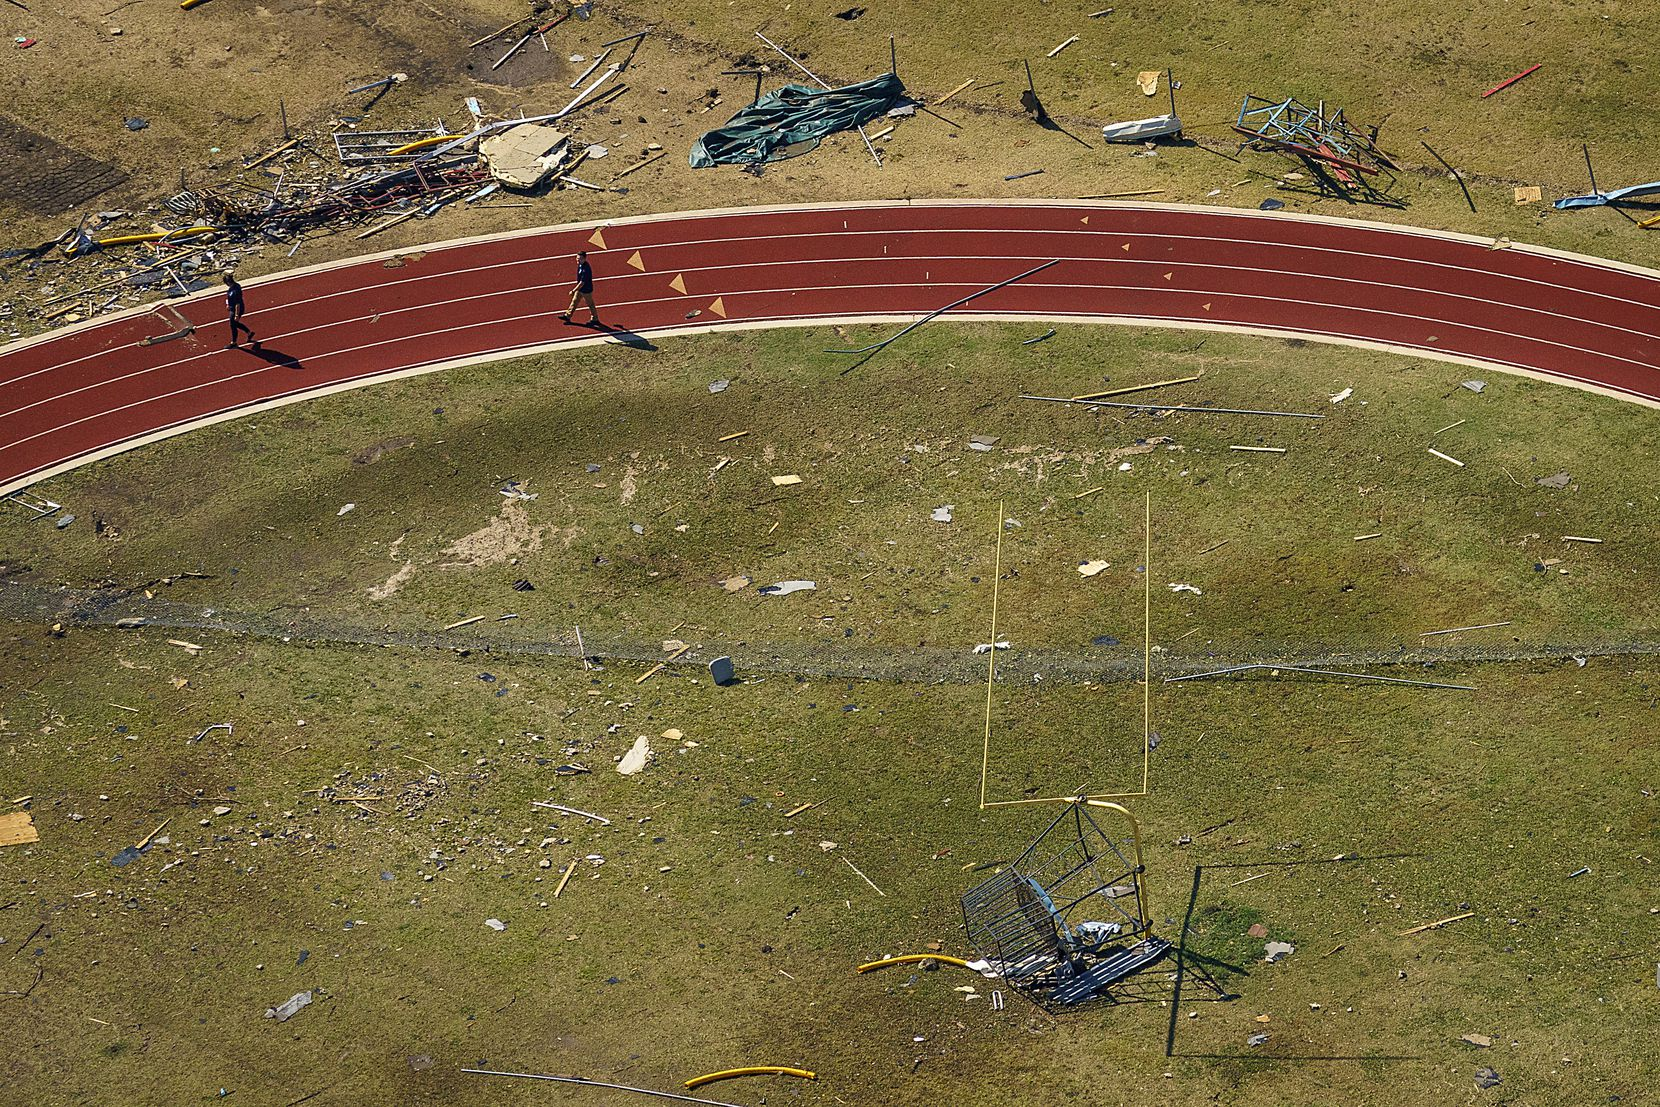 Storm debris lies scattered on an athletic field at Thomas Jefferson High School.